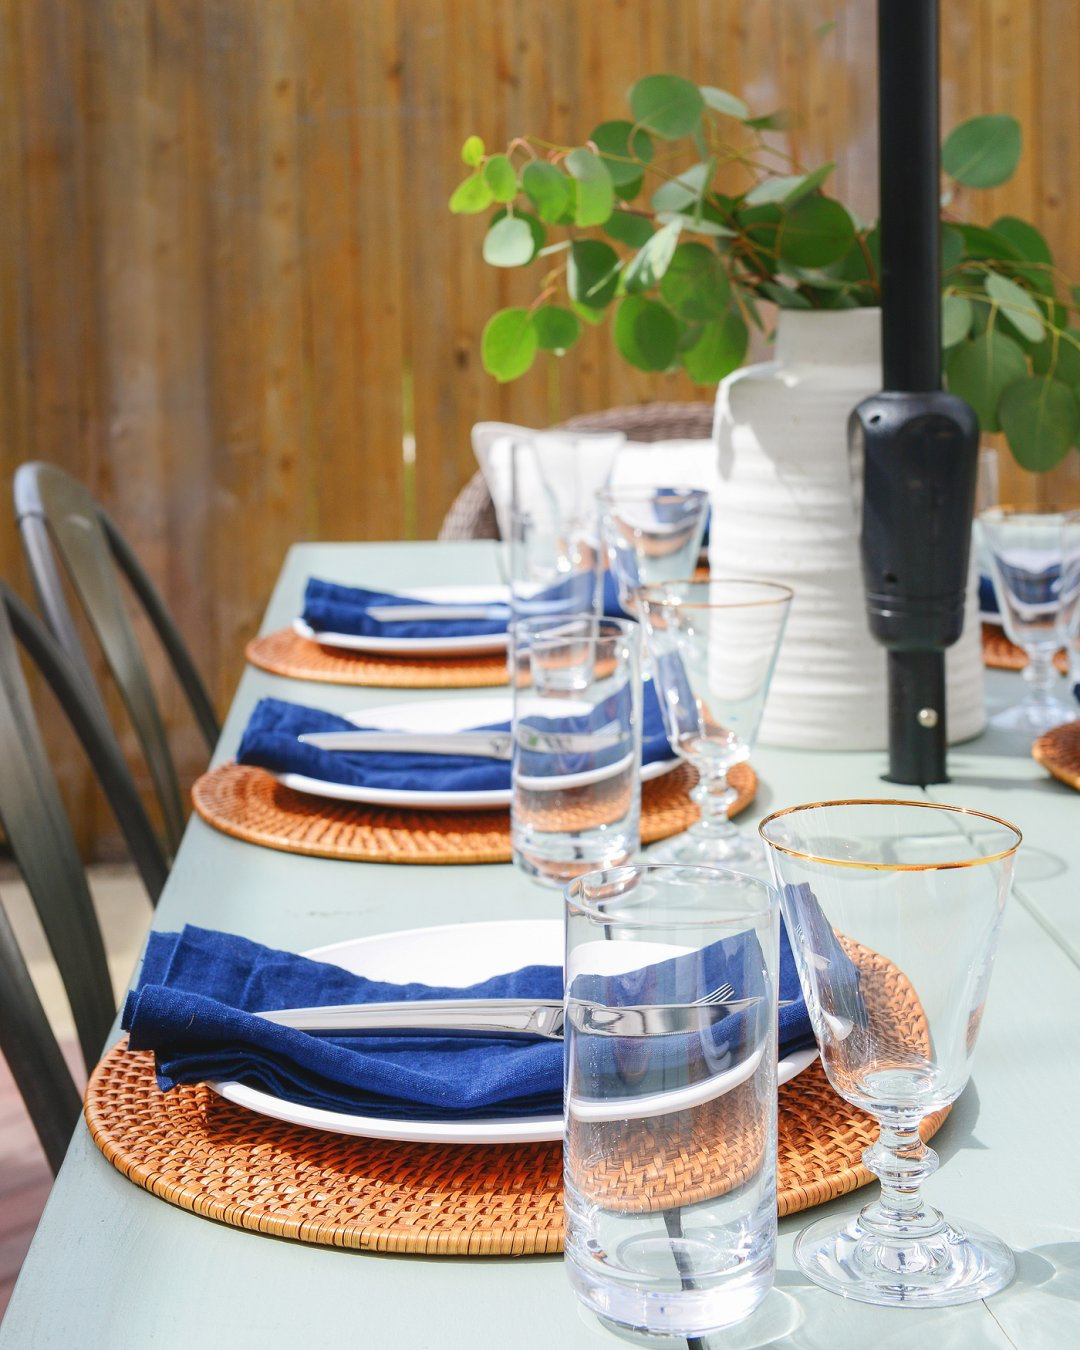 Side view of table set for brunch